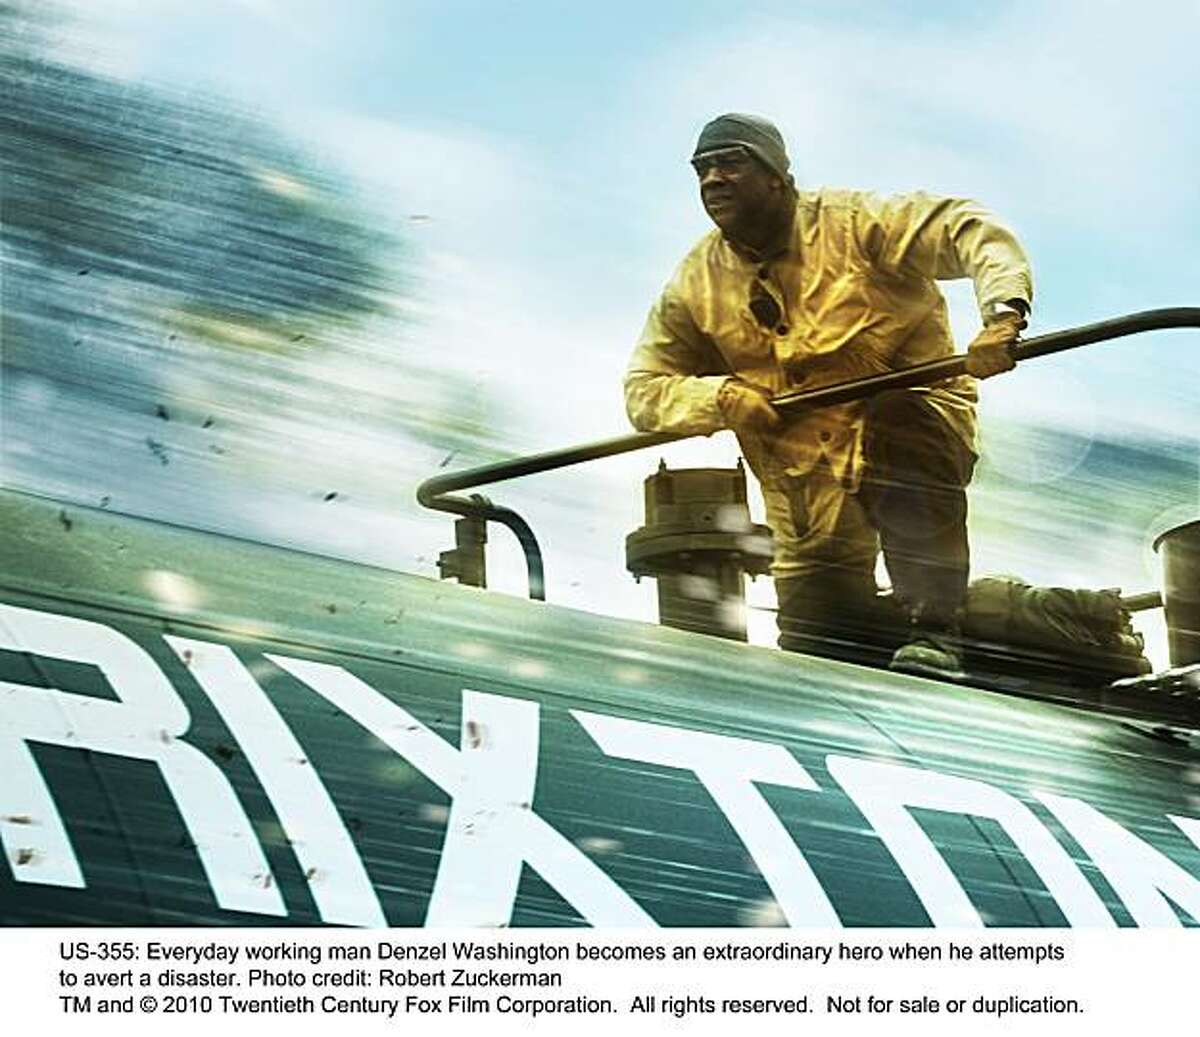 UNSTOPPABLE Everyday working man Denzel Washington becomes an extraordinary hero when he attempts to avert a disaster.